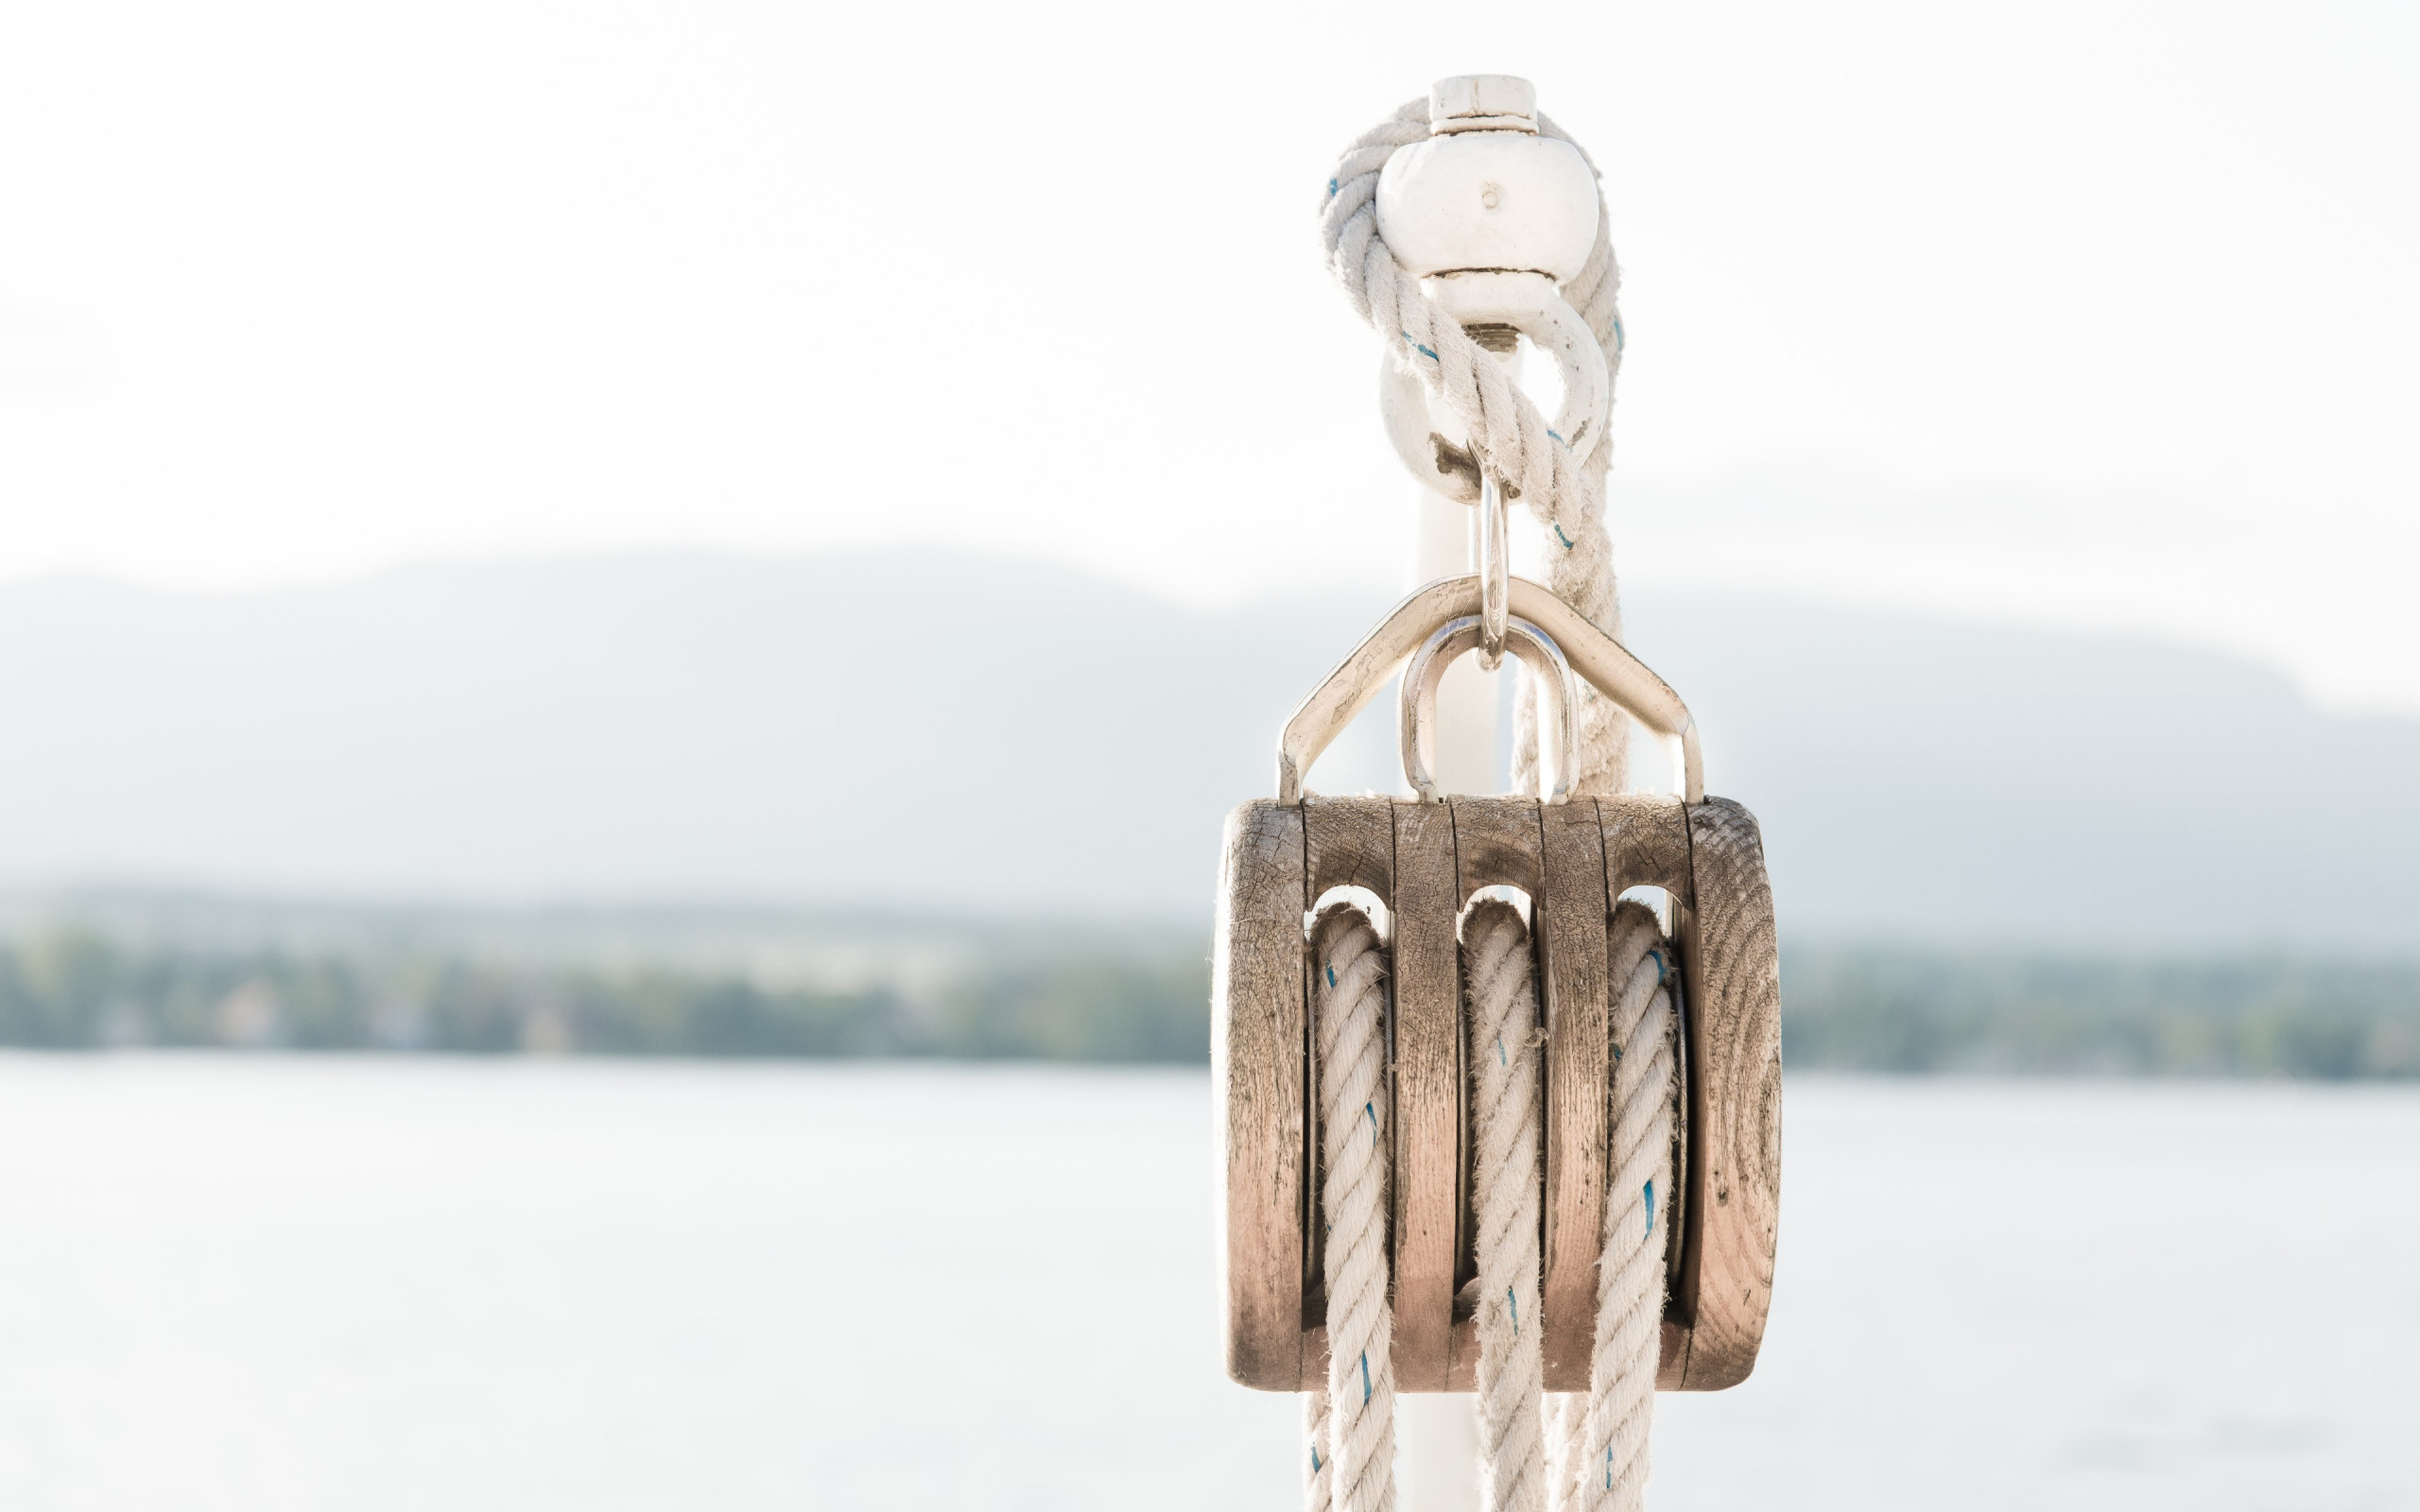 Pulley on a boat wallpaper 2560x1600